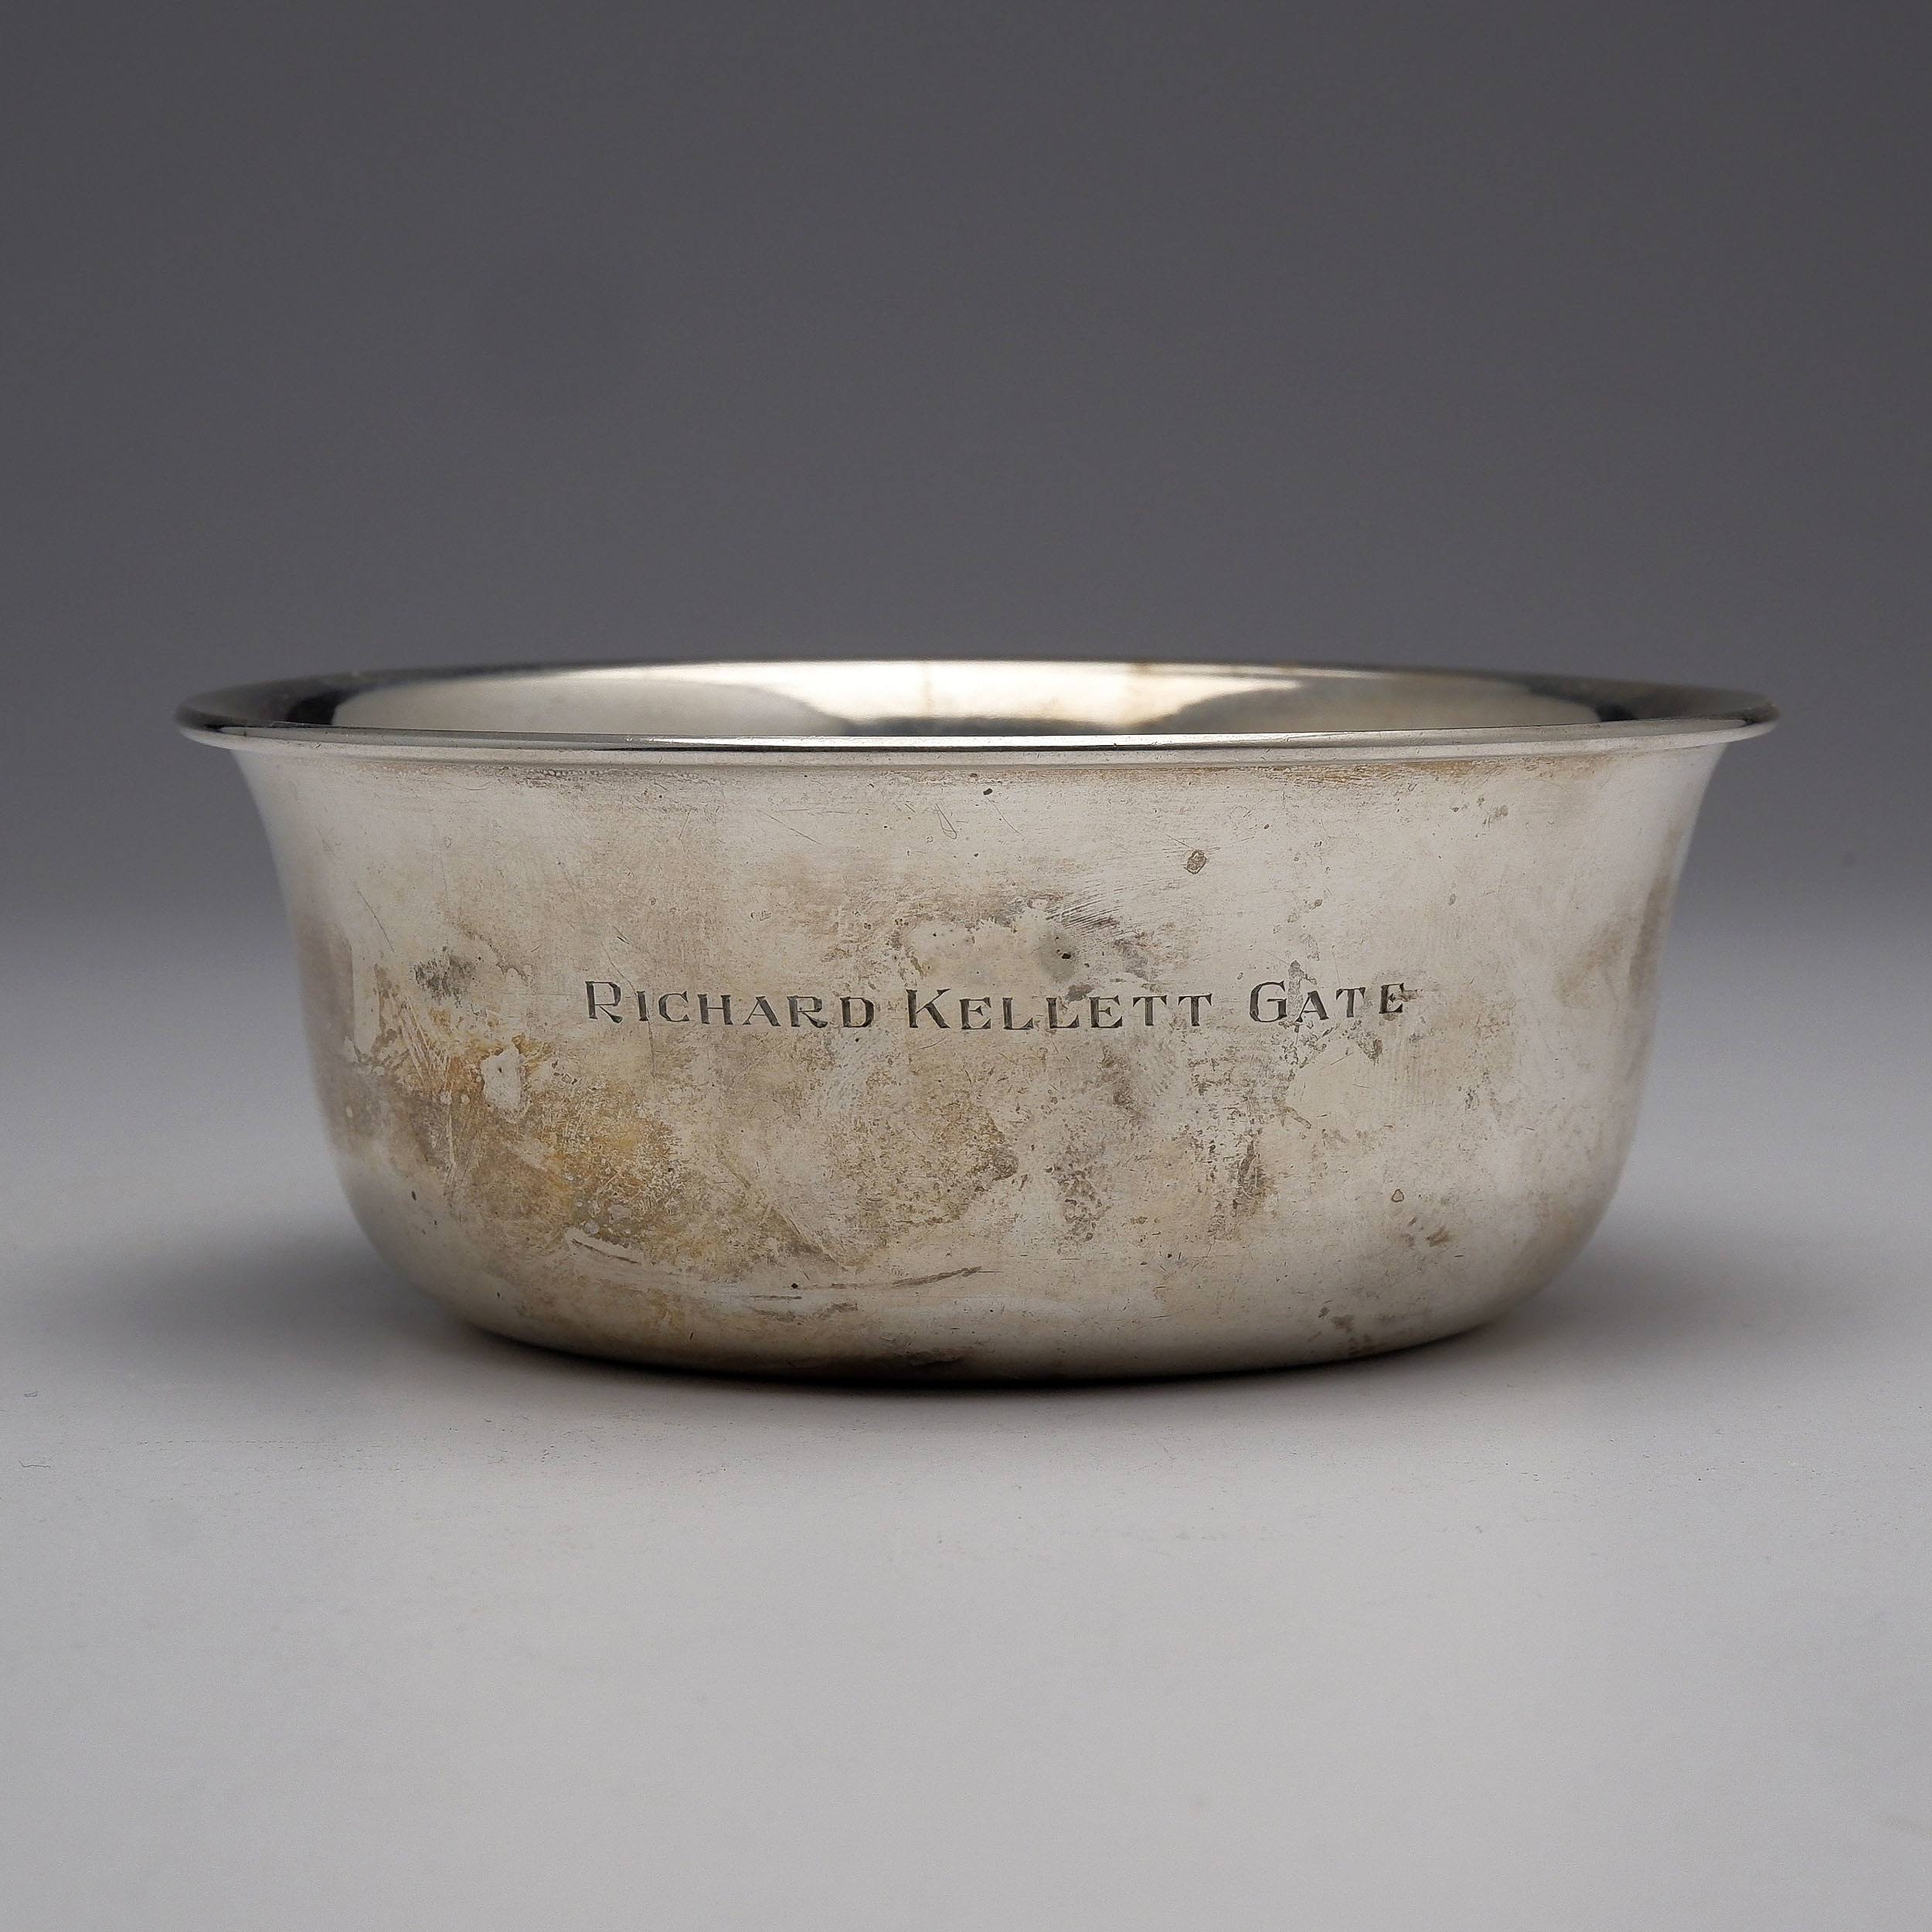 'Australian Crested and Engraved Sterling Silver Bowl with Emu Hallmark, 146g'